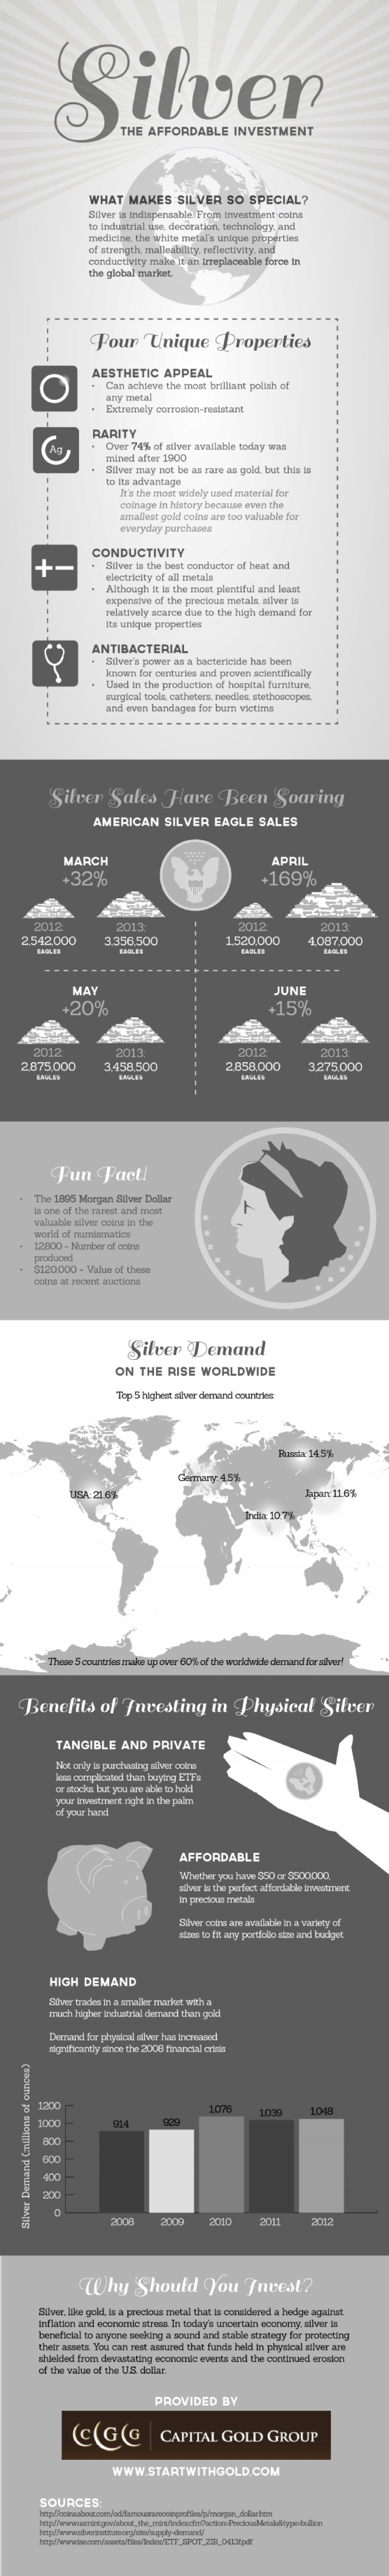 Silver: The Affordable Investment Infographic